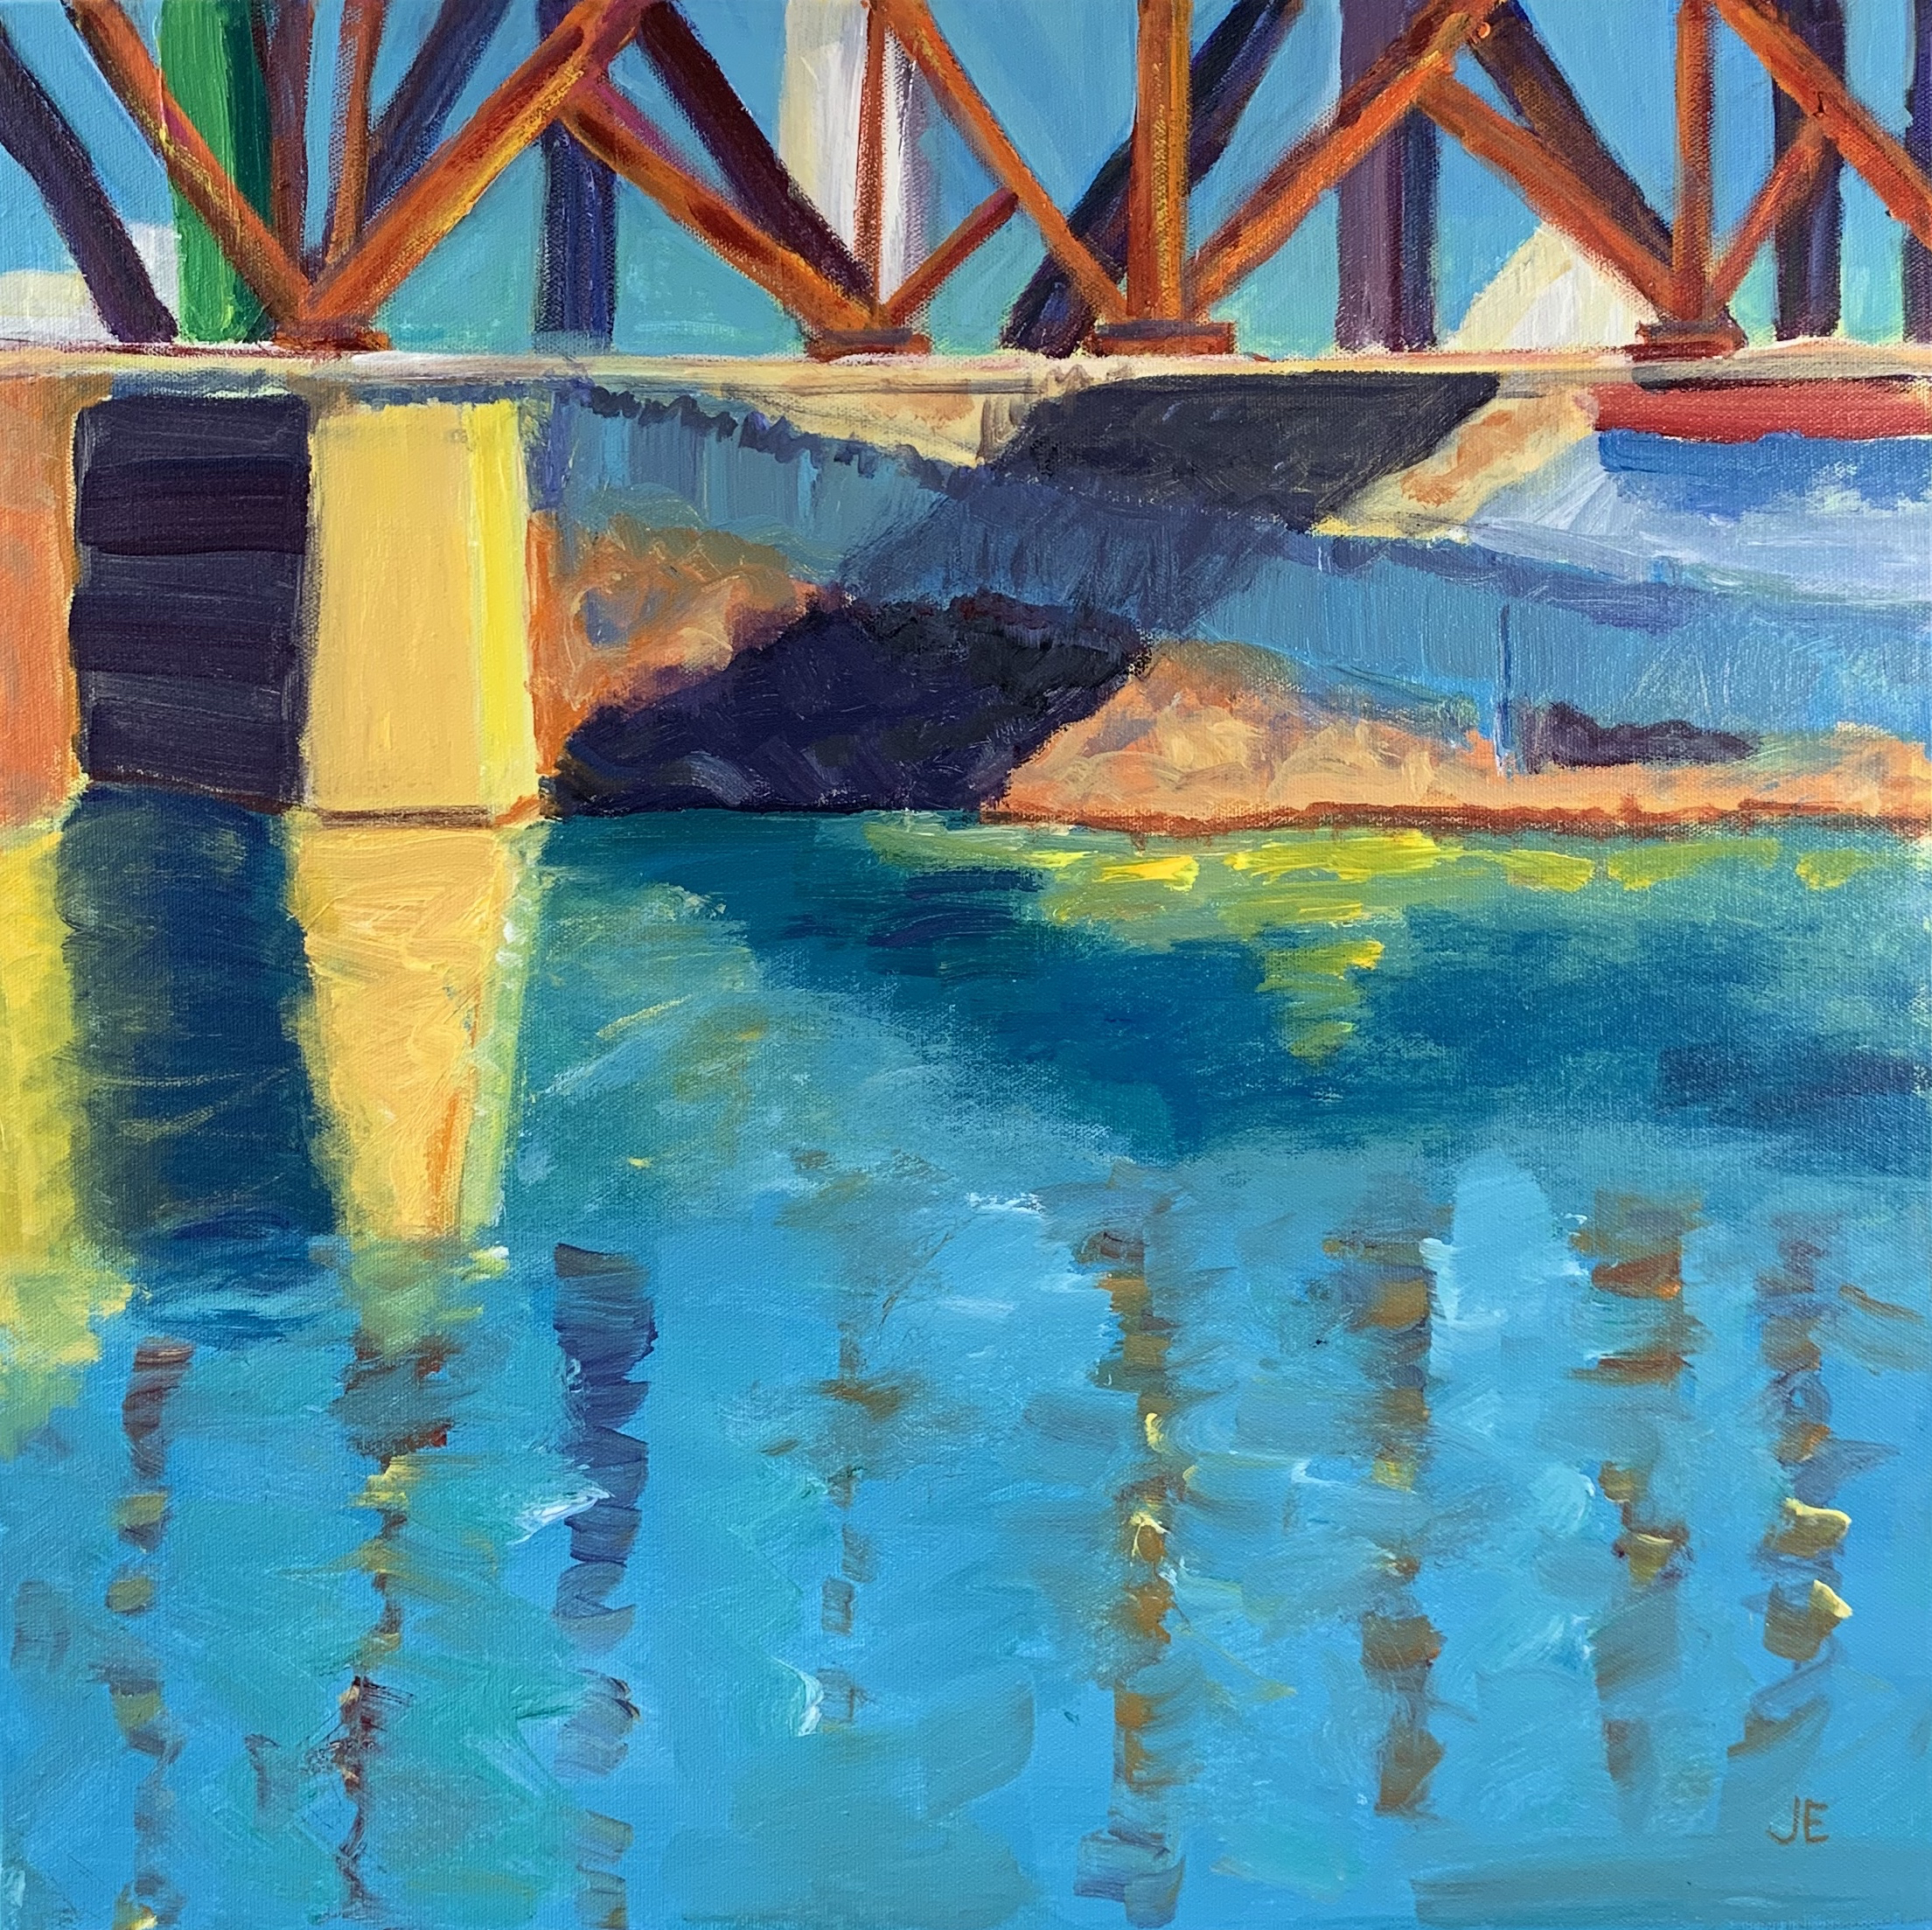 I Street Bridge, 20 x 20, SOLD